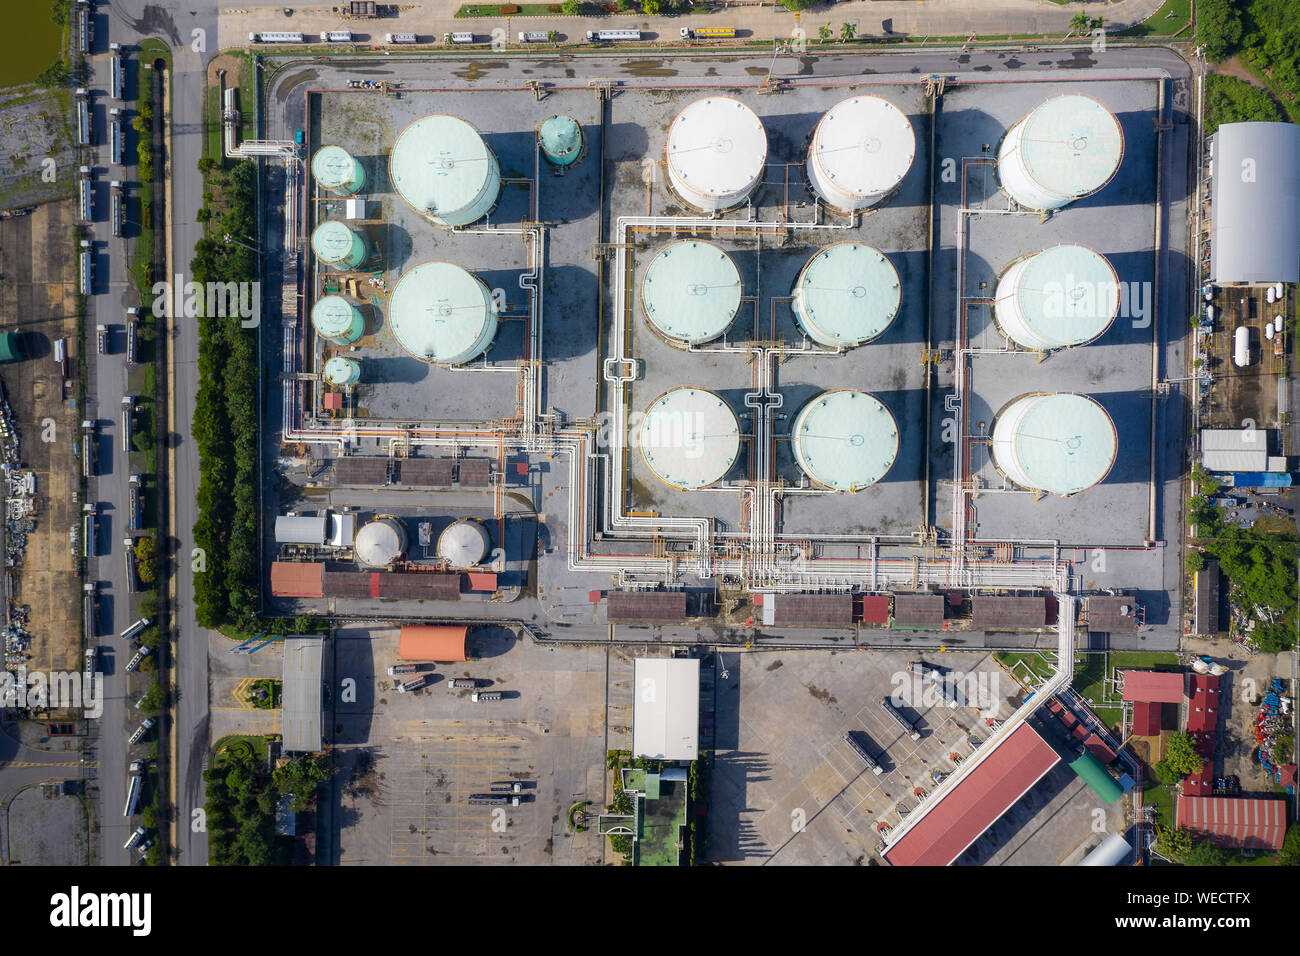 Aerial view of Chemical industry storage tank and tanker truck In wailting in Industrial Plant to tranfer oil to gas station. Stock Photo